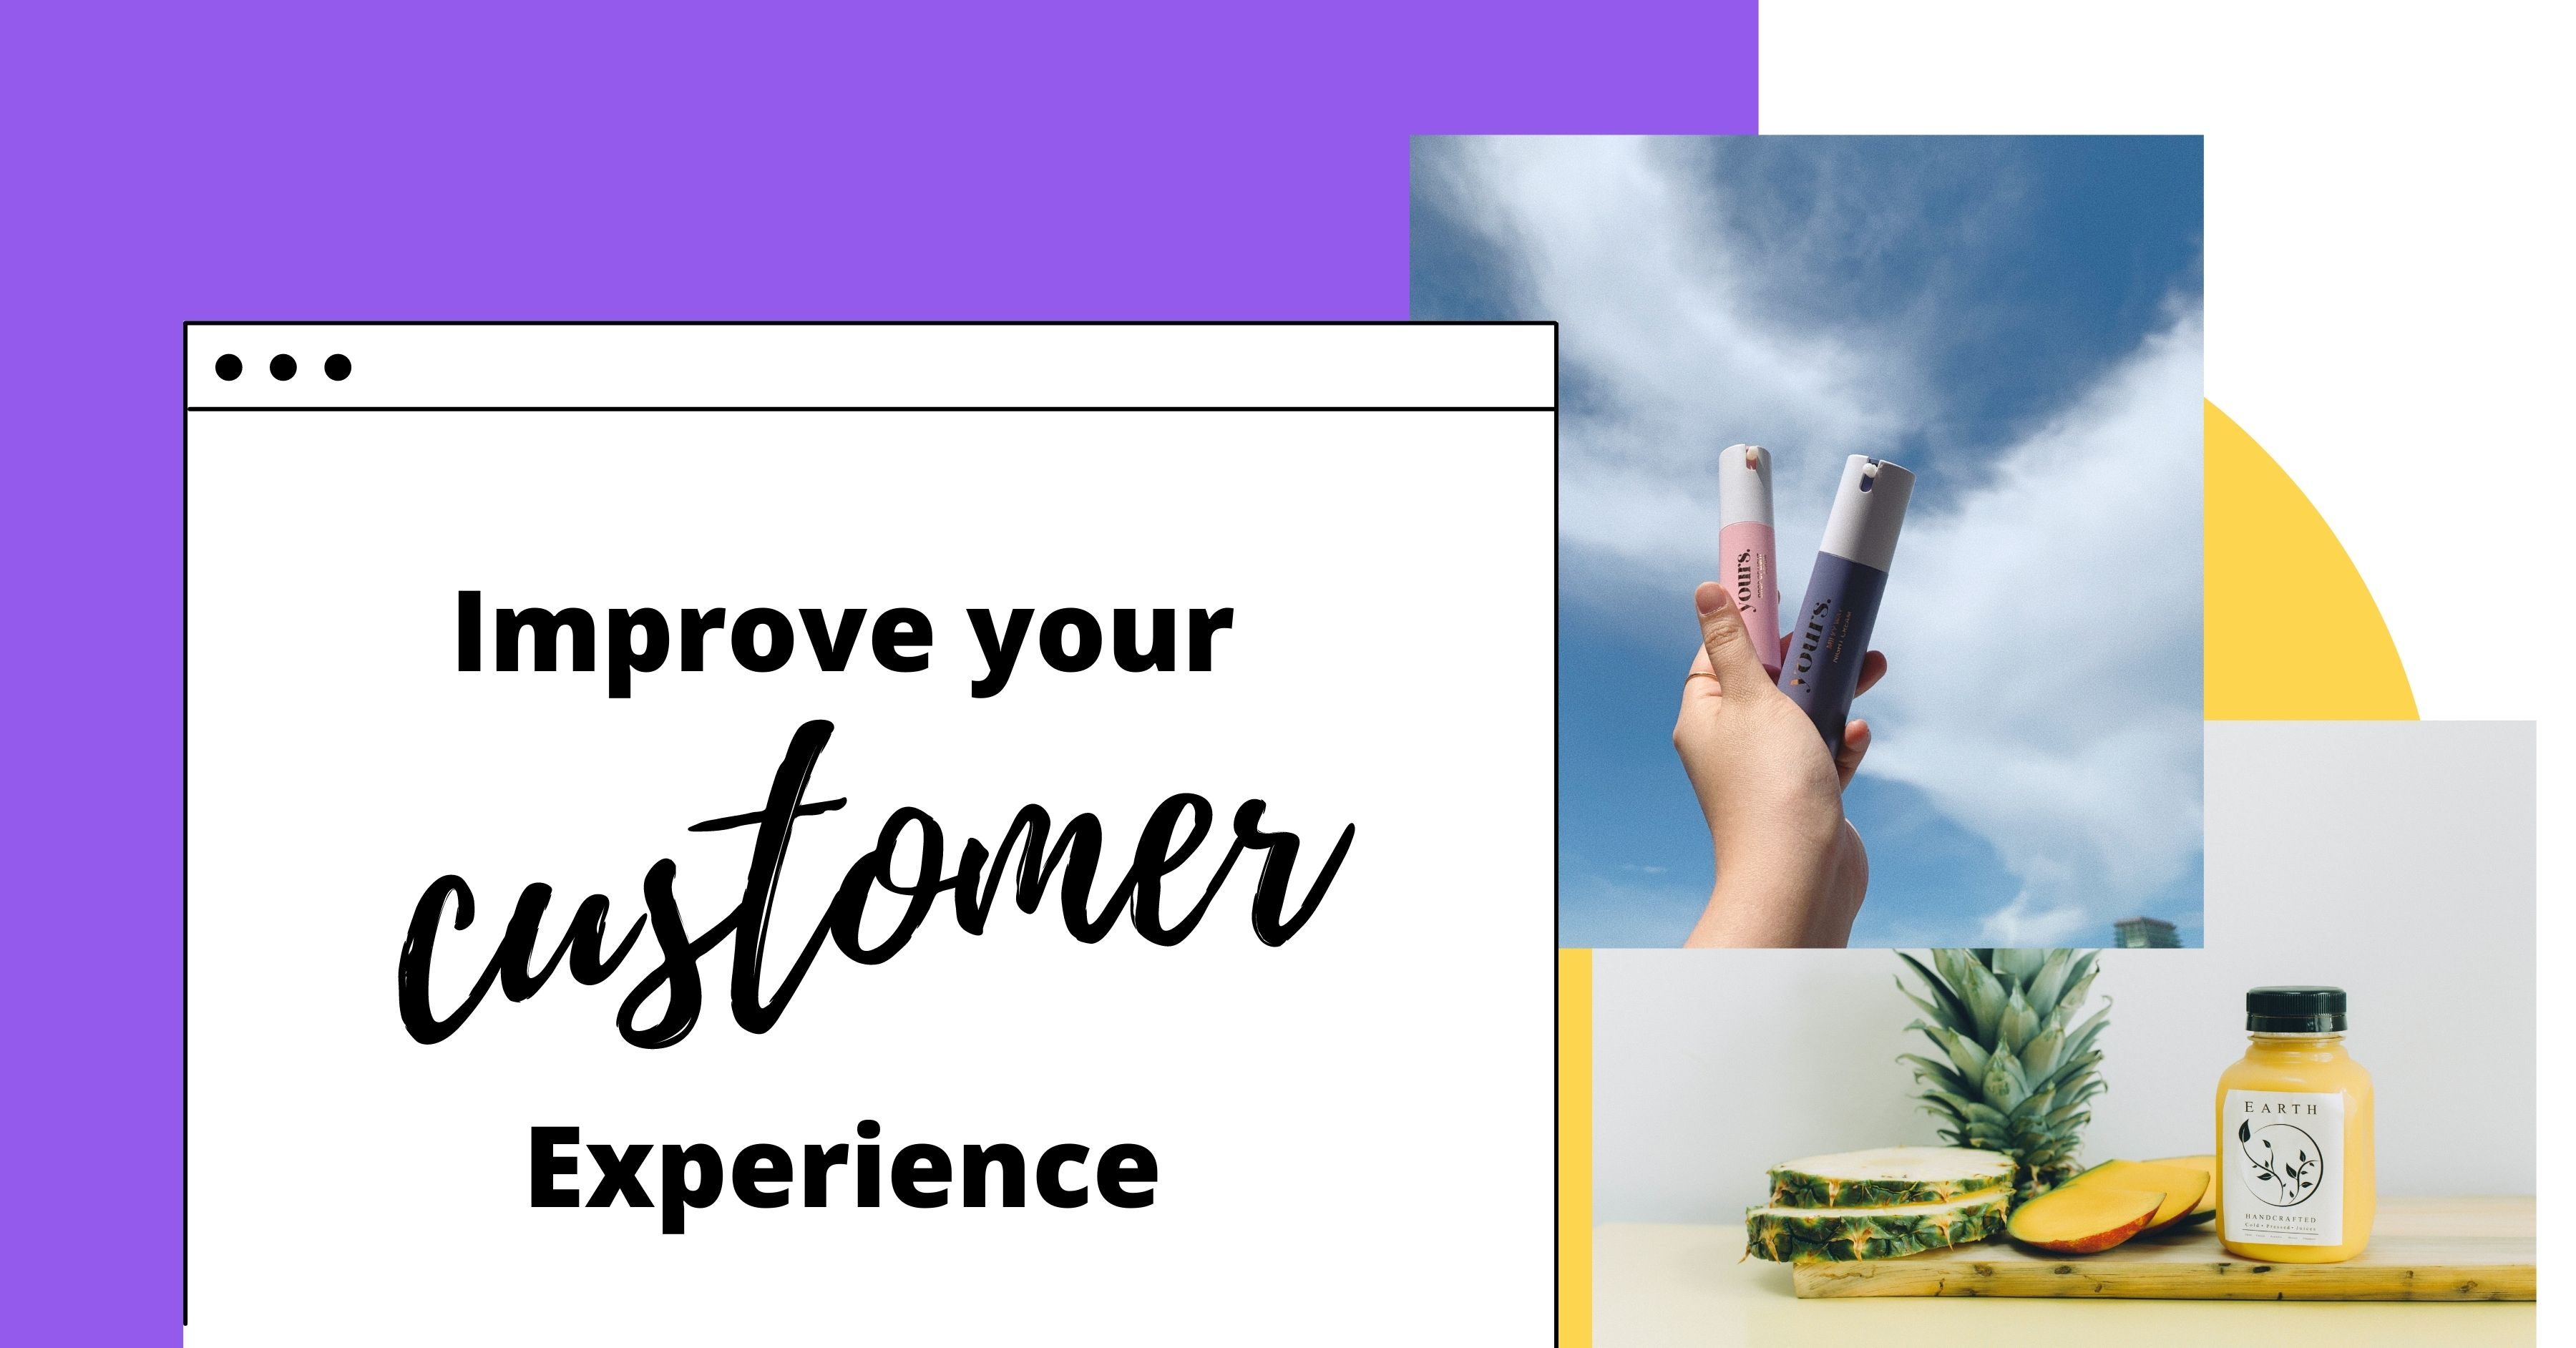 What Should You Do to Improve Your Customer Experience